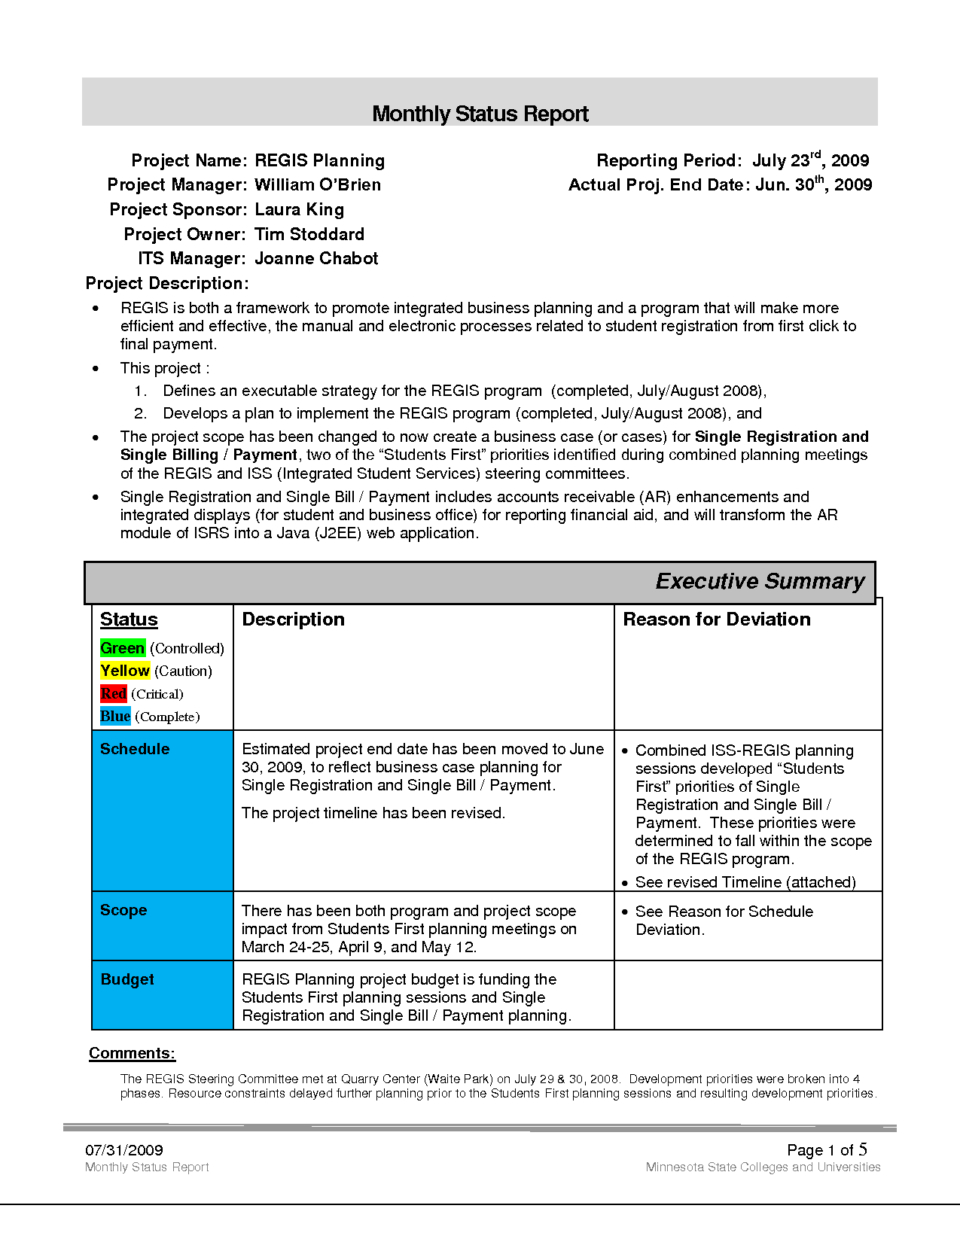 Clever Business Project Monthly Status Report Template And Form Regarding Project Monthly Status Report Template